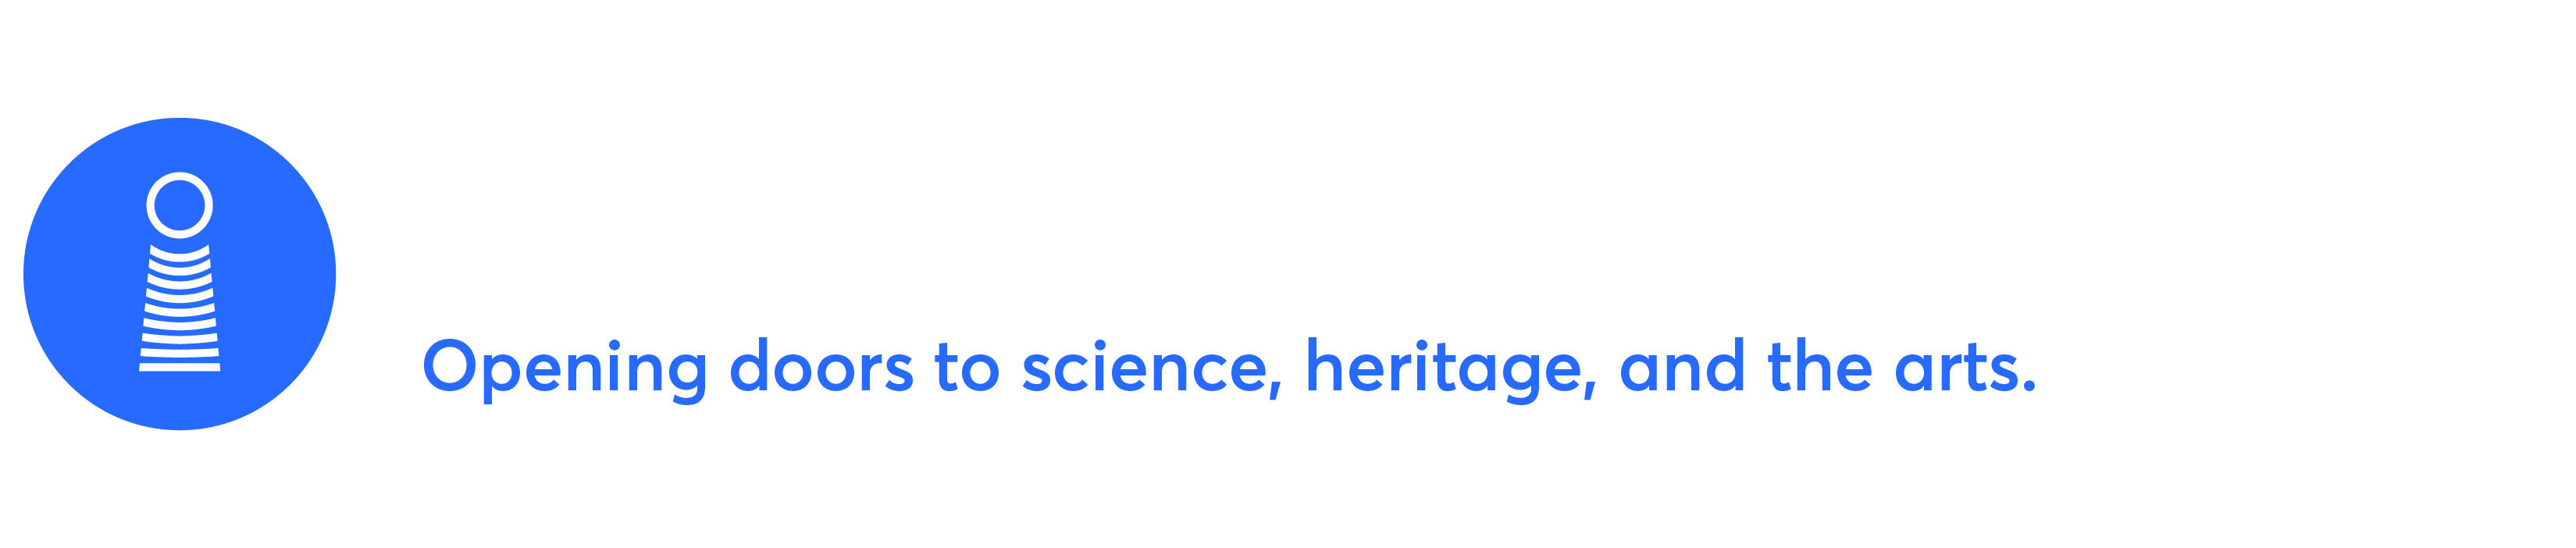 Inspire Washington logo